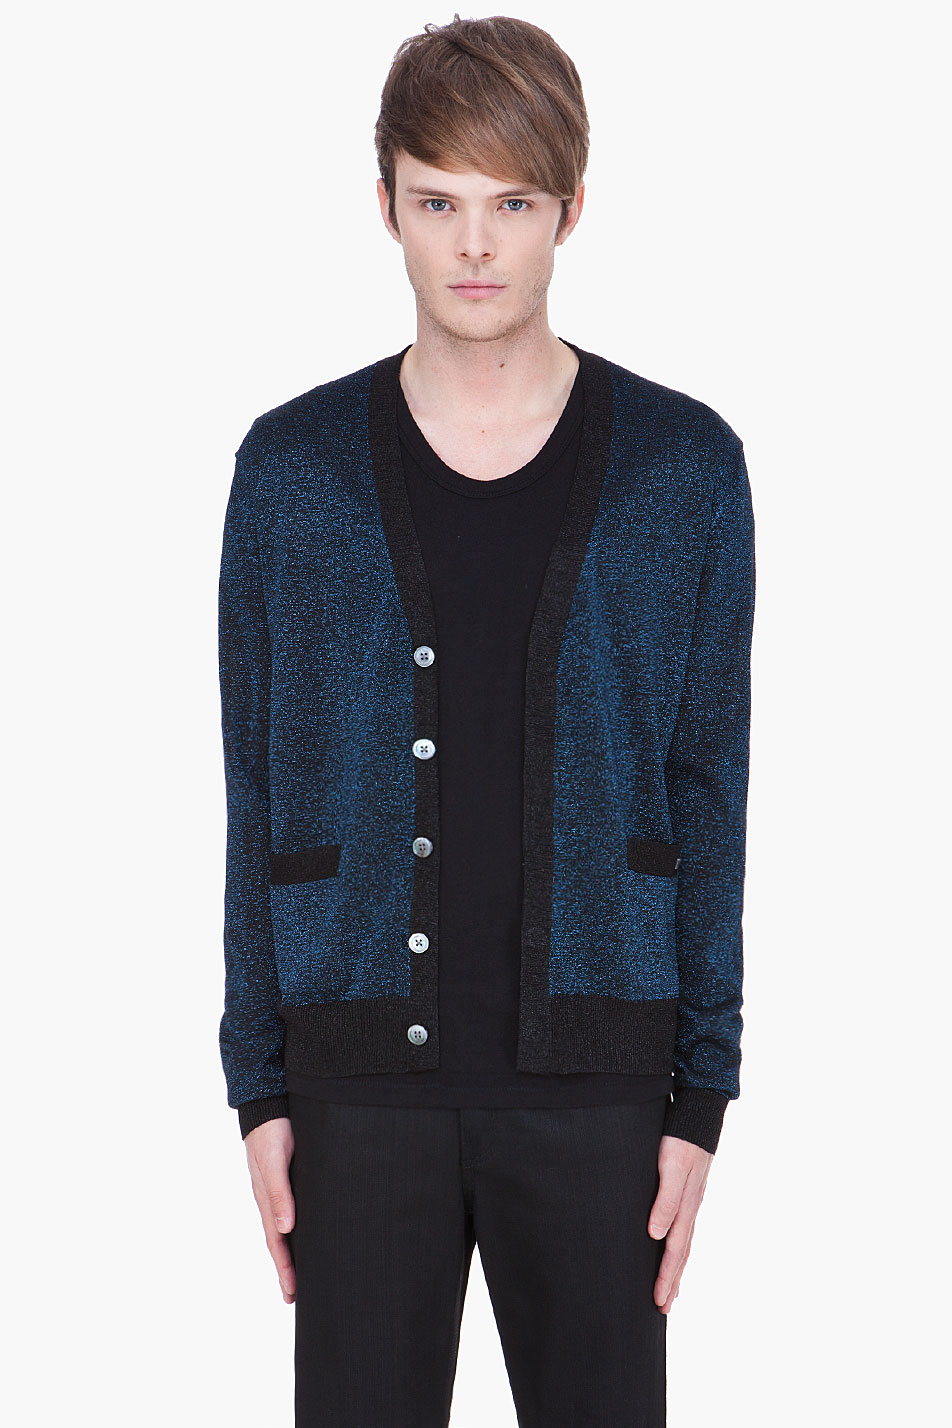 Marc by marc jacobs Metallic Blue Lurex Sweater in Blue for Men | Lyst